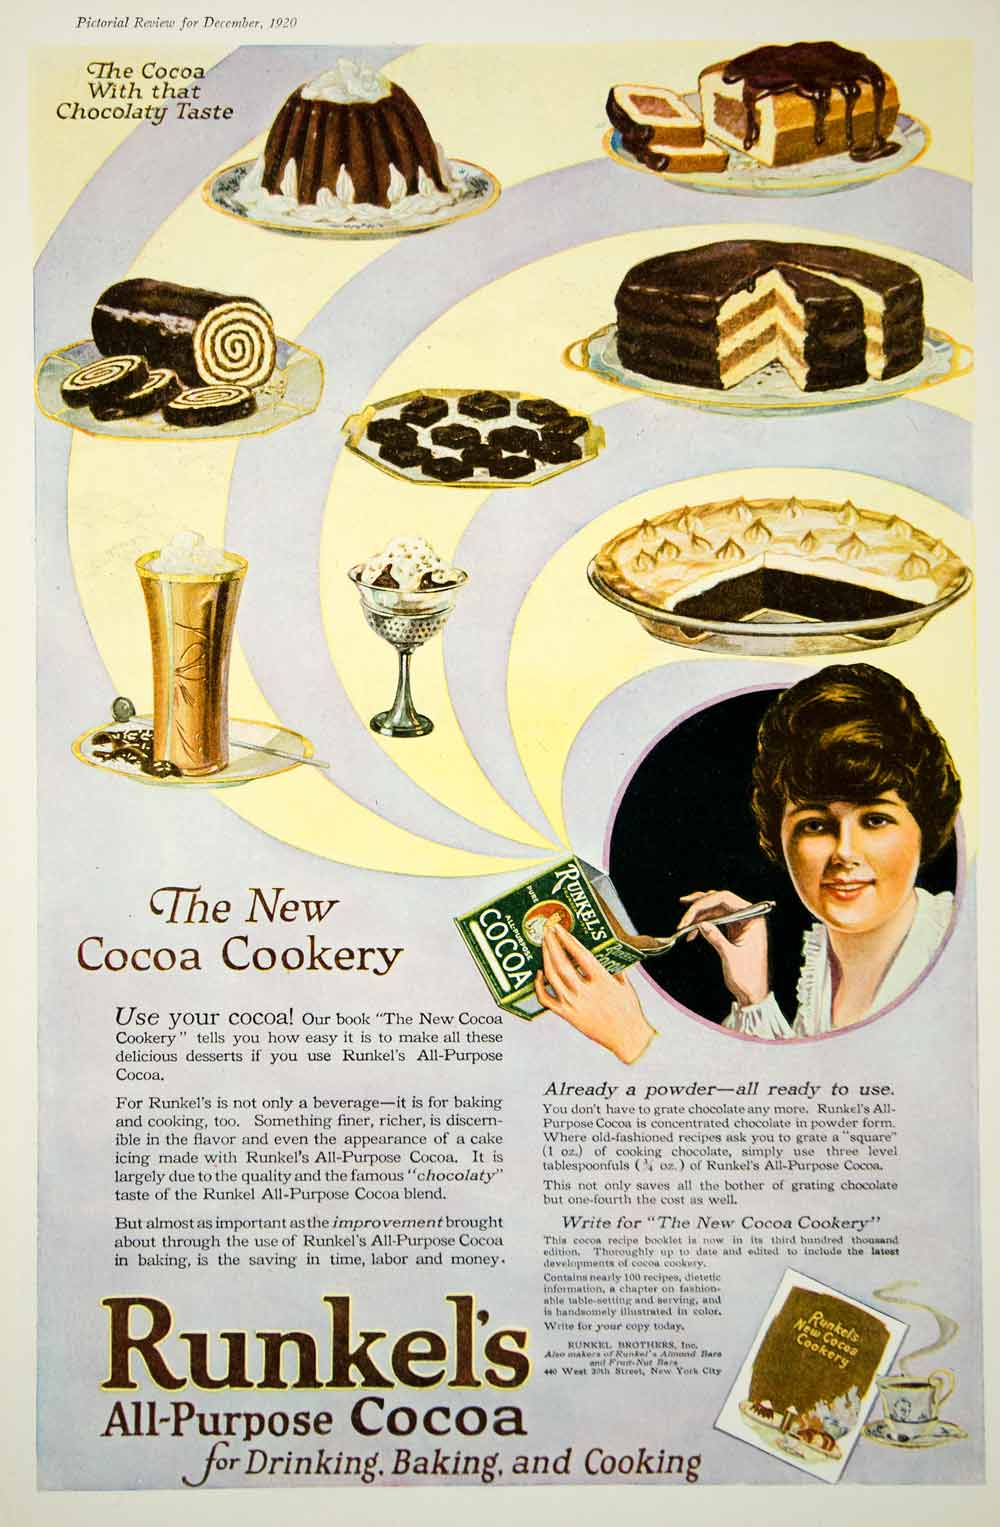 1920 Ad Vintage Runkel's Cocoa Baking Chocolate Cooking Desserts Beverage Drink